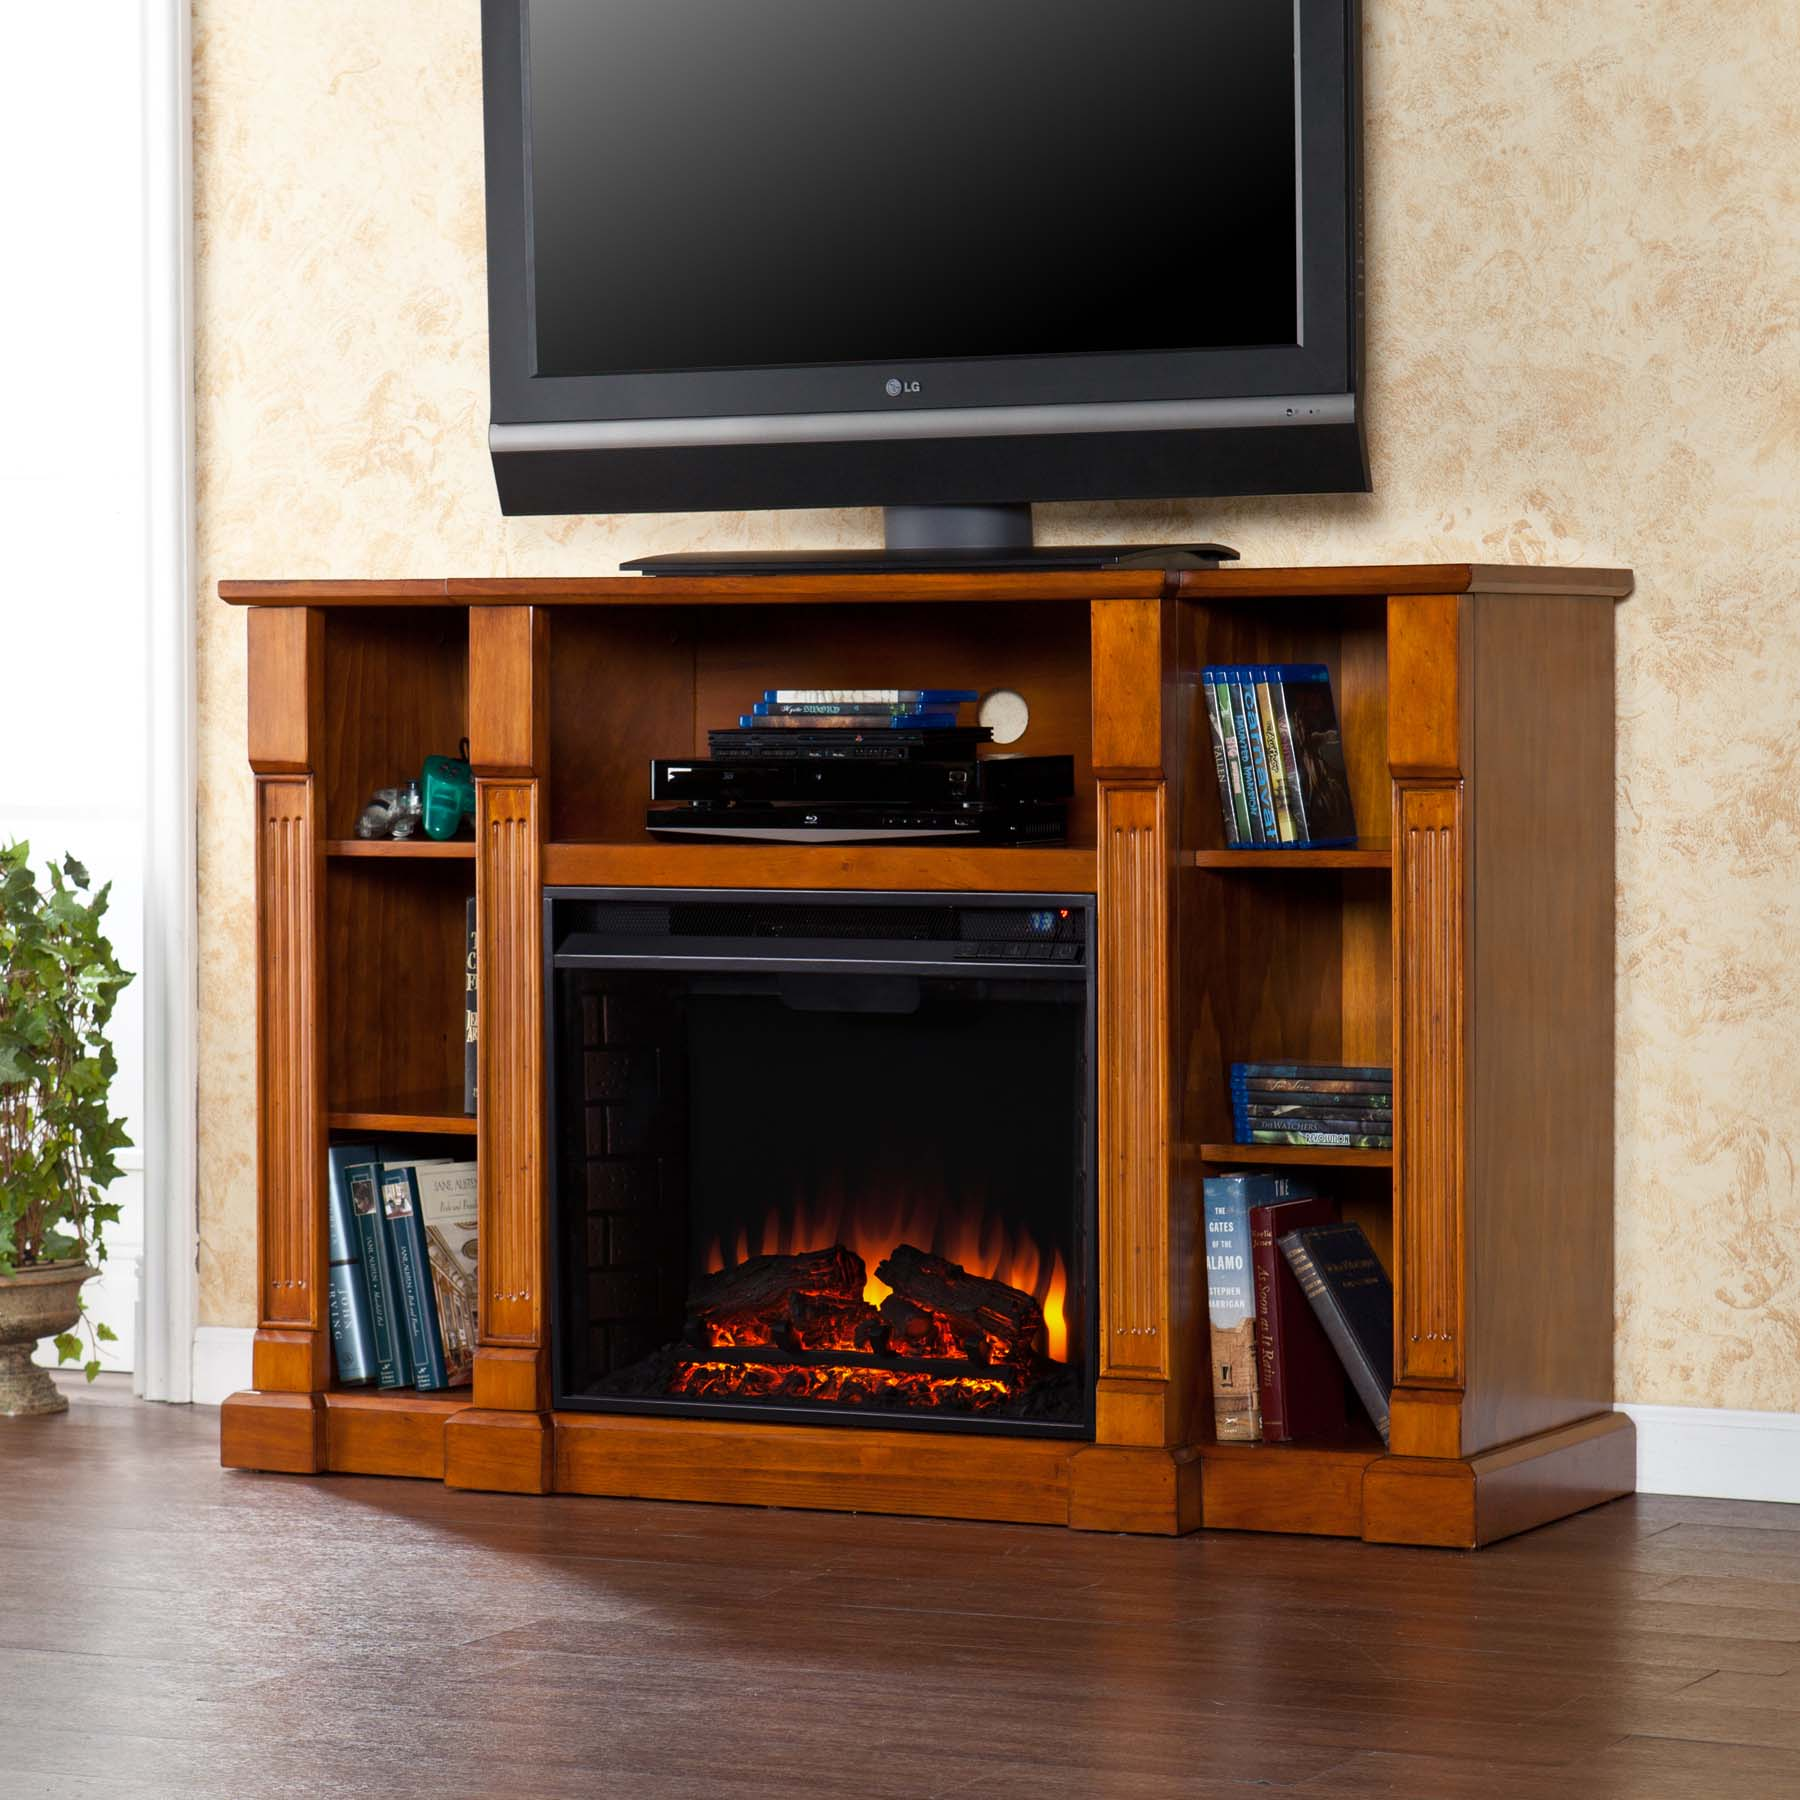 electric fantastical decor large fireplace inserts on fresh insert design room ideas